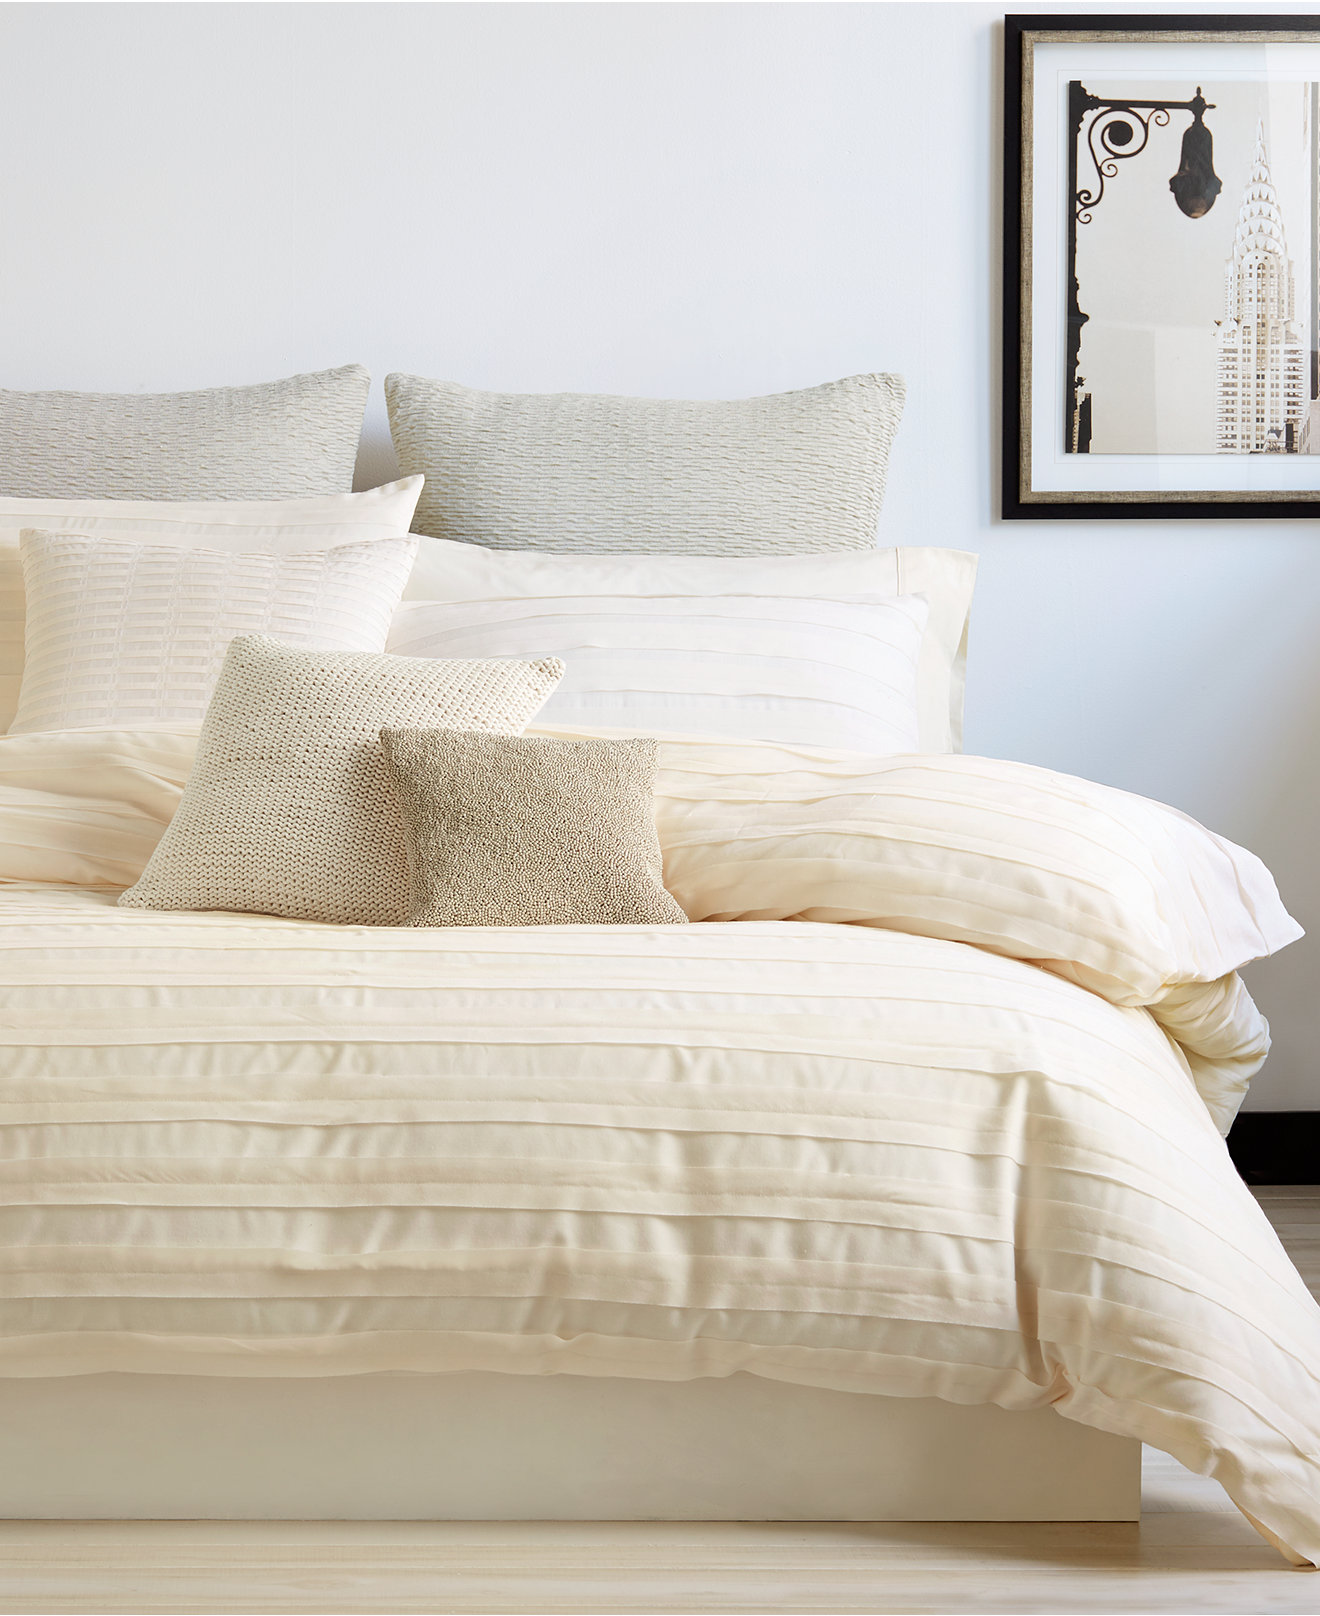 Enchanting donna karan bedding with Cushion and pillows also beautiful duvet cover and sidetable and luxury wall paint color